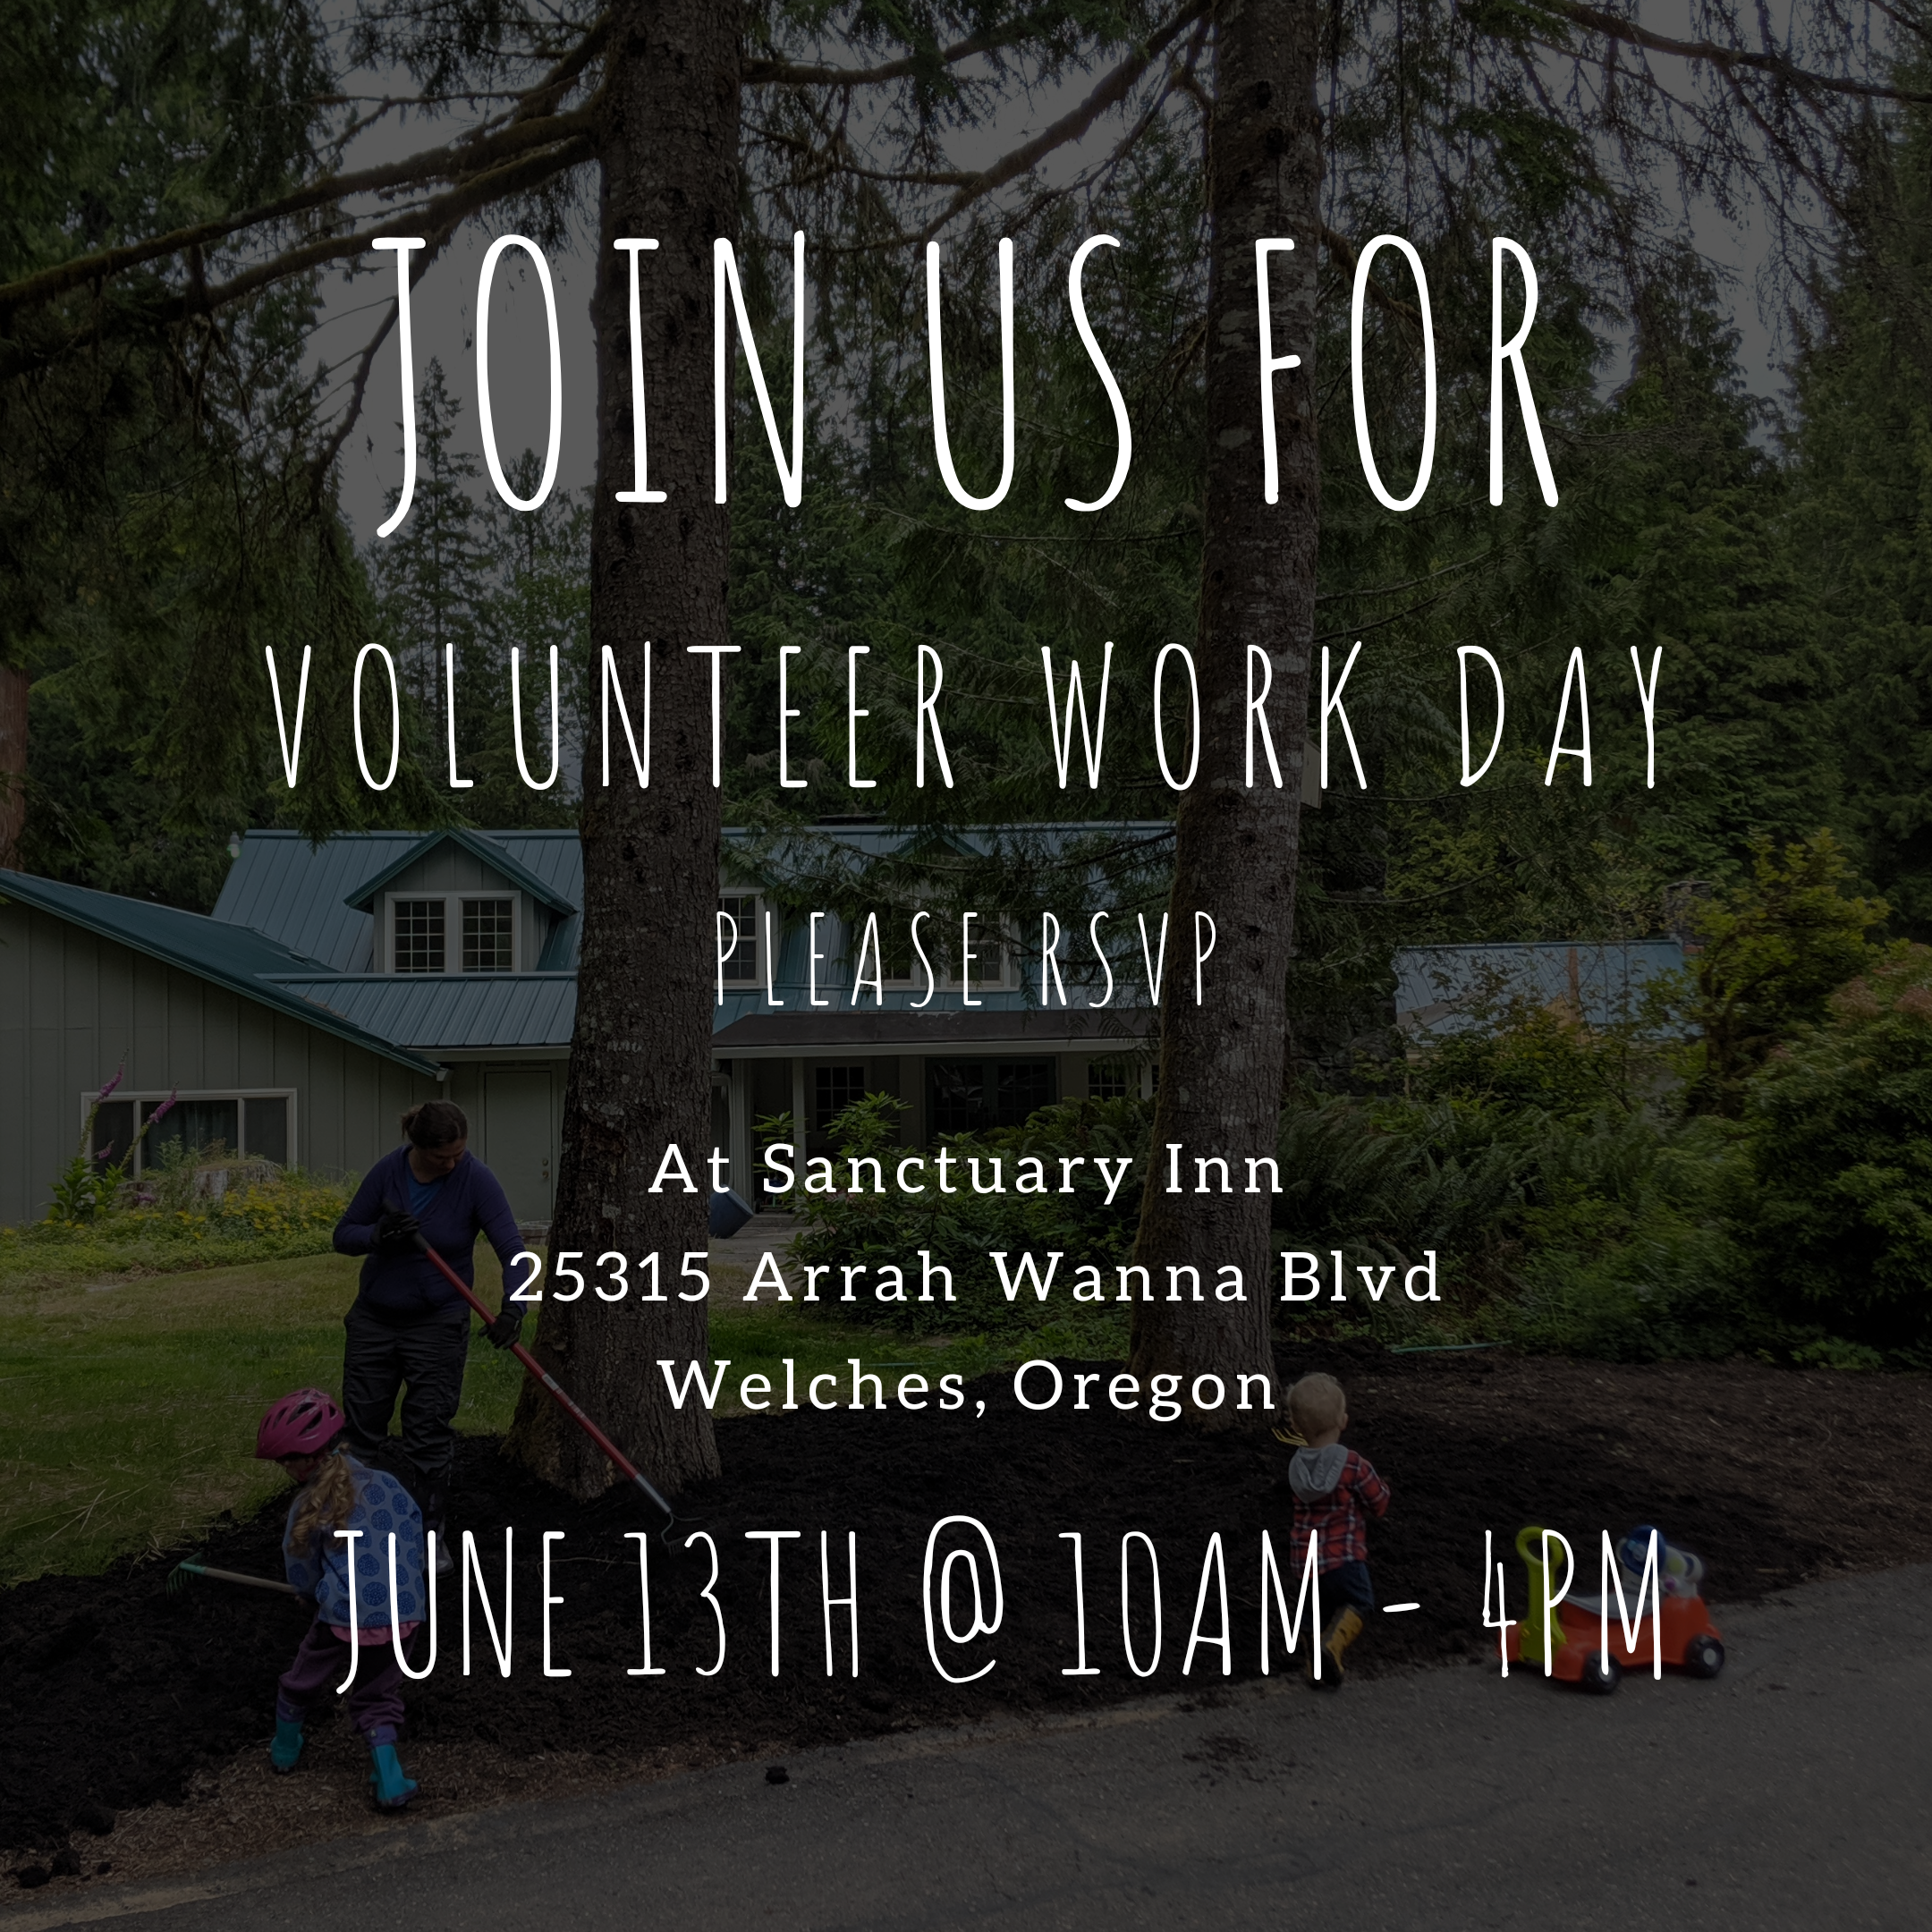 Join Us For : Volunteer Work Day - June 13th @ 10AM - 4PM